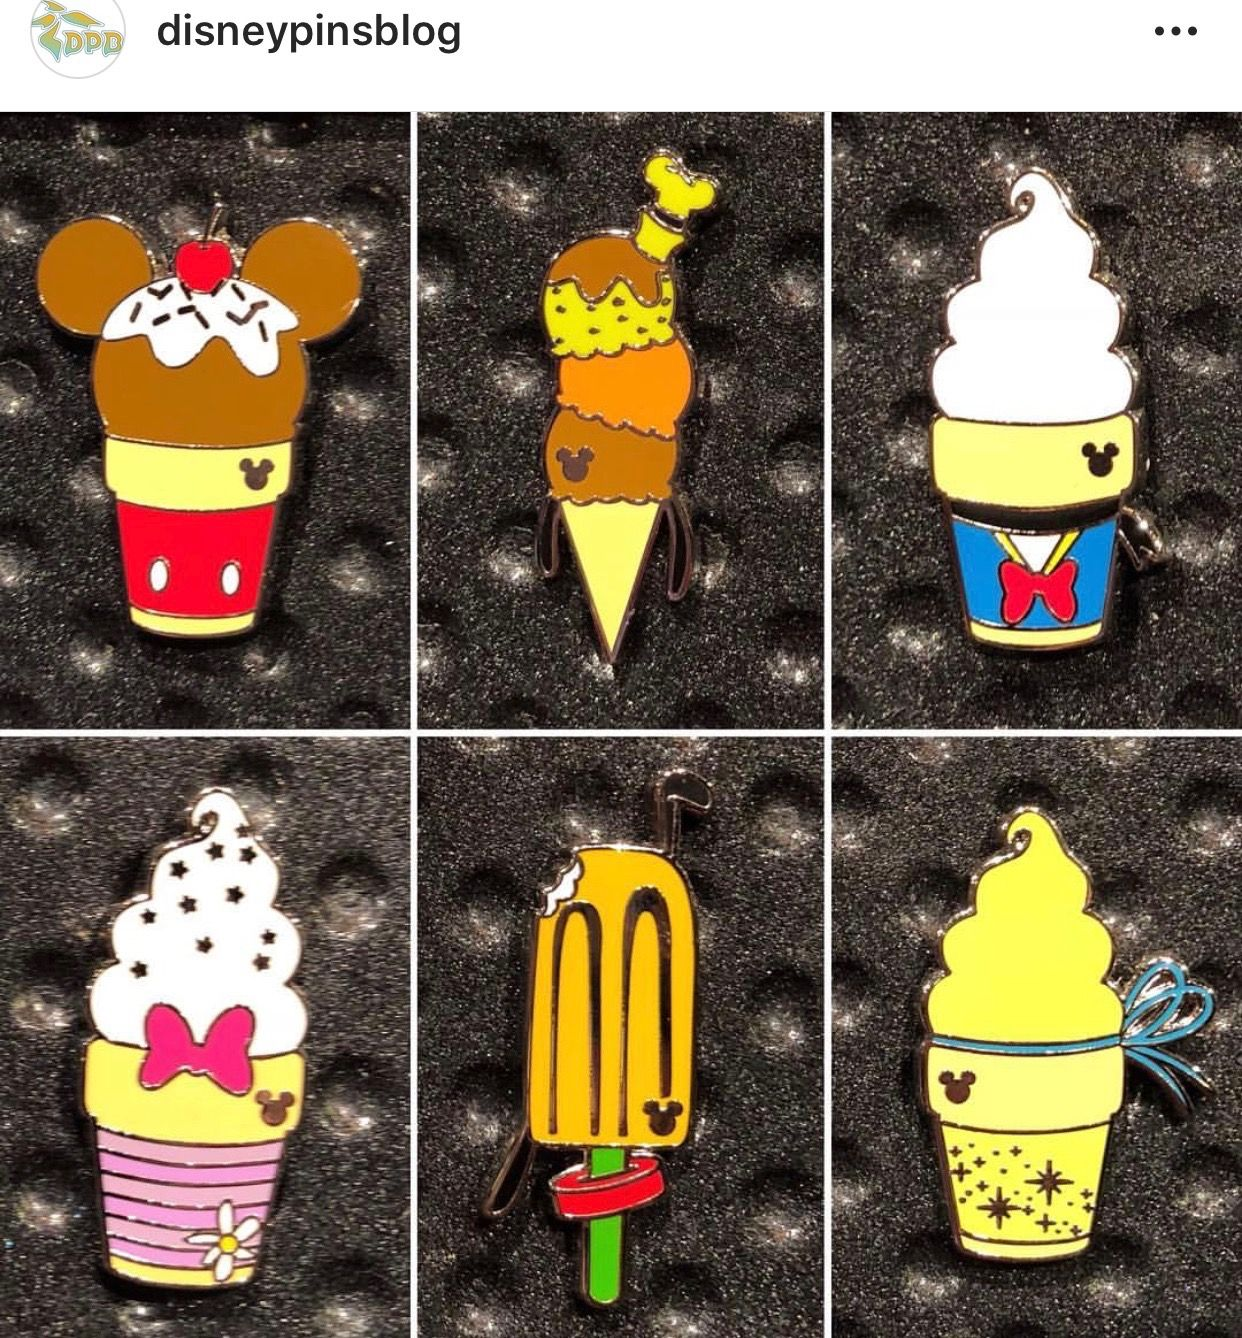 Disney Pin *Ice Cream* Character Treats Mystery Collection Donald!